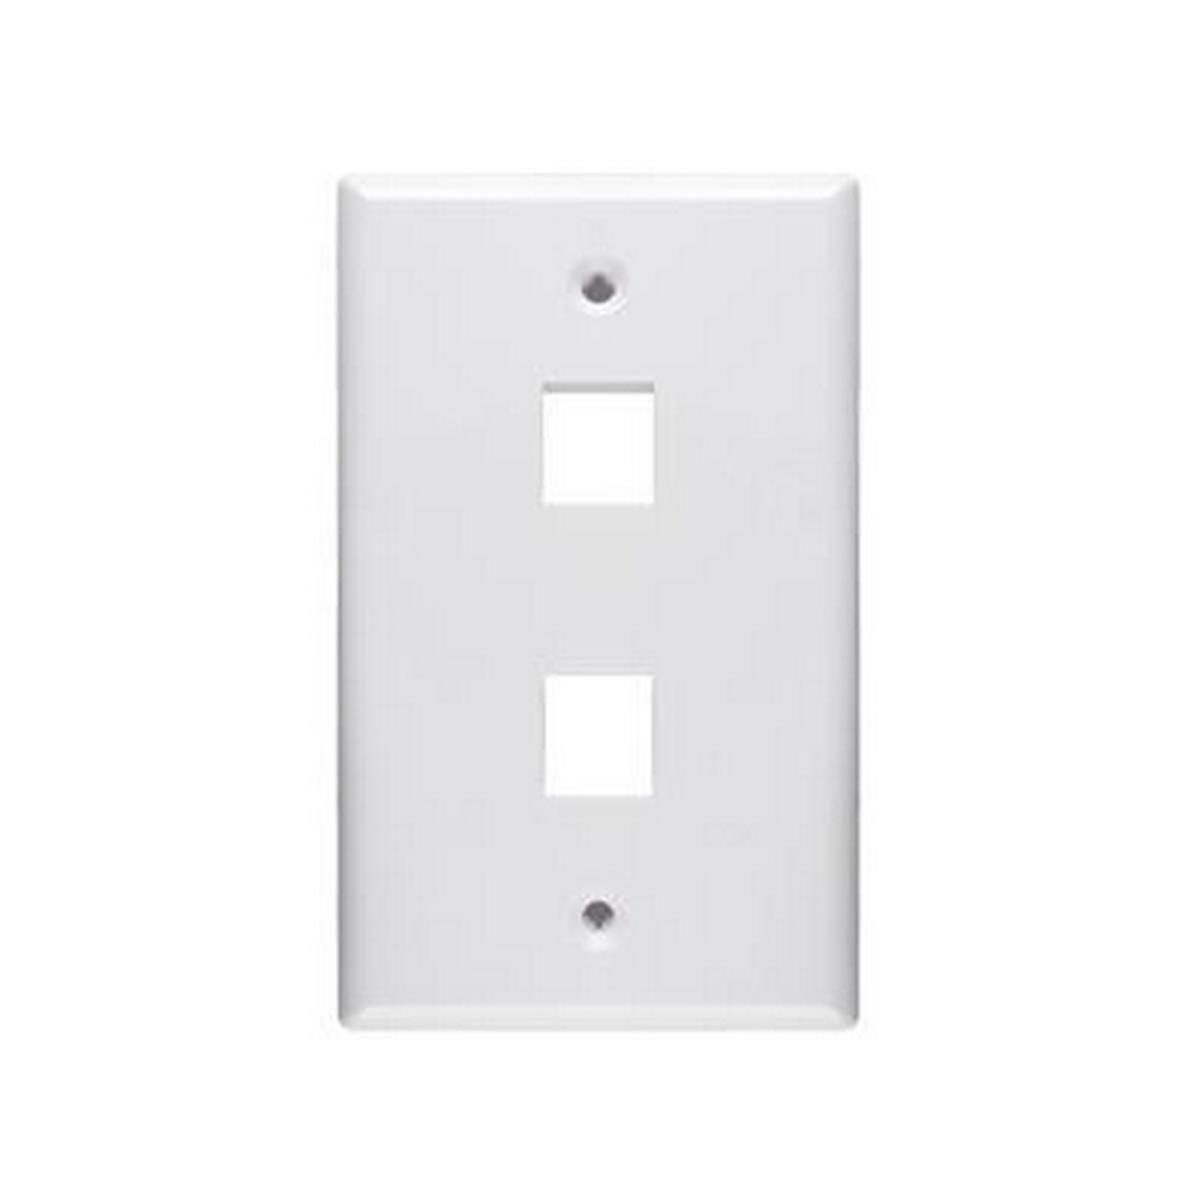 2 Port keystone 1 gang Wall plate White